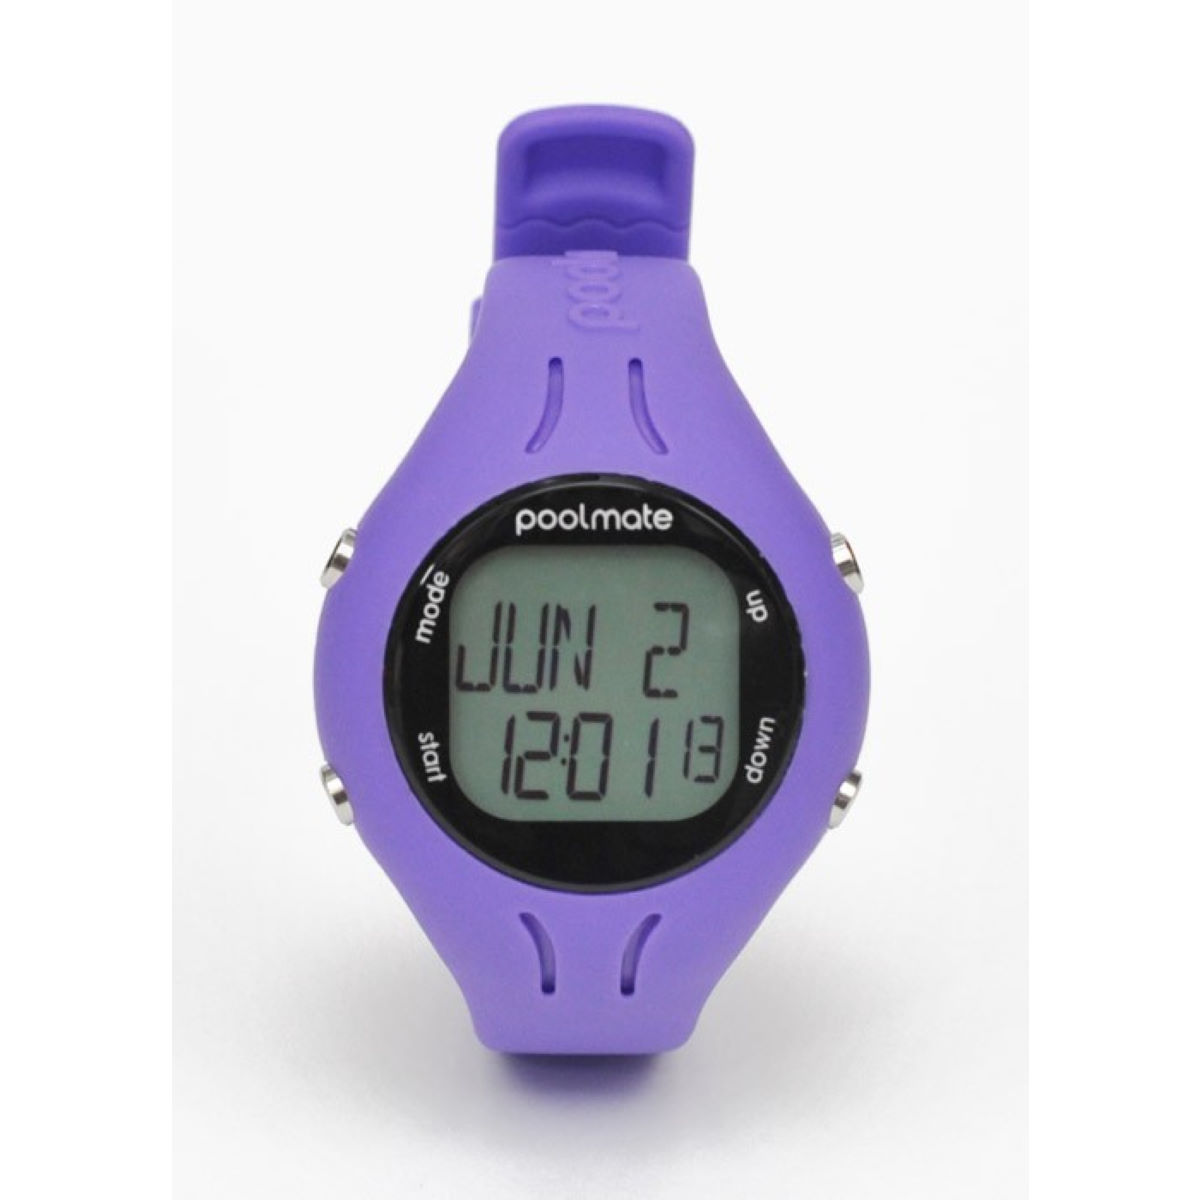 Montre Swimovate Pool Mate 2 - Mauve Compteurs GPS de running